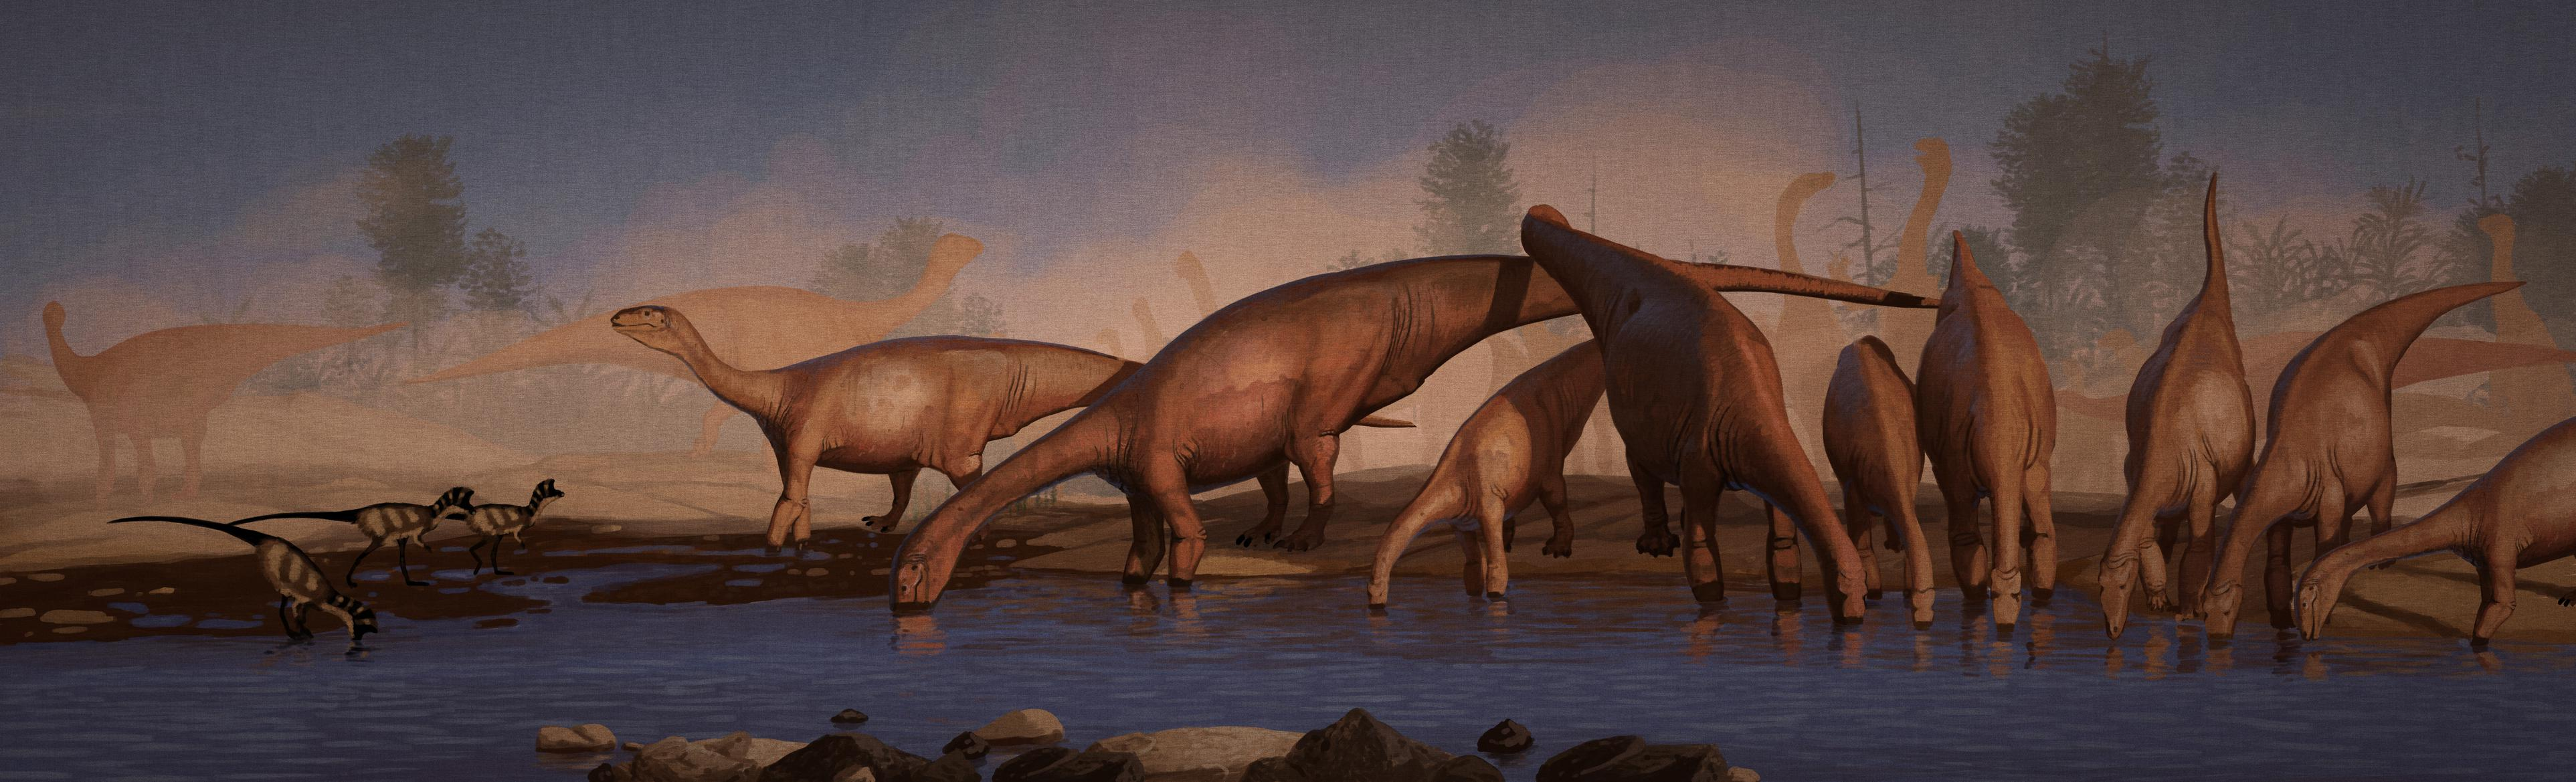 palaeo, painting, dinosaurs, ornithiscians, prosauropods, sauropodomorphs, watering hole, sunset, herds, triassic, south africa